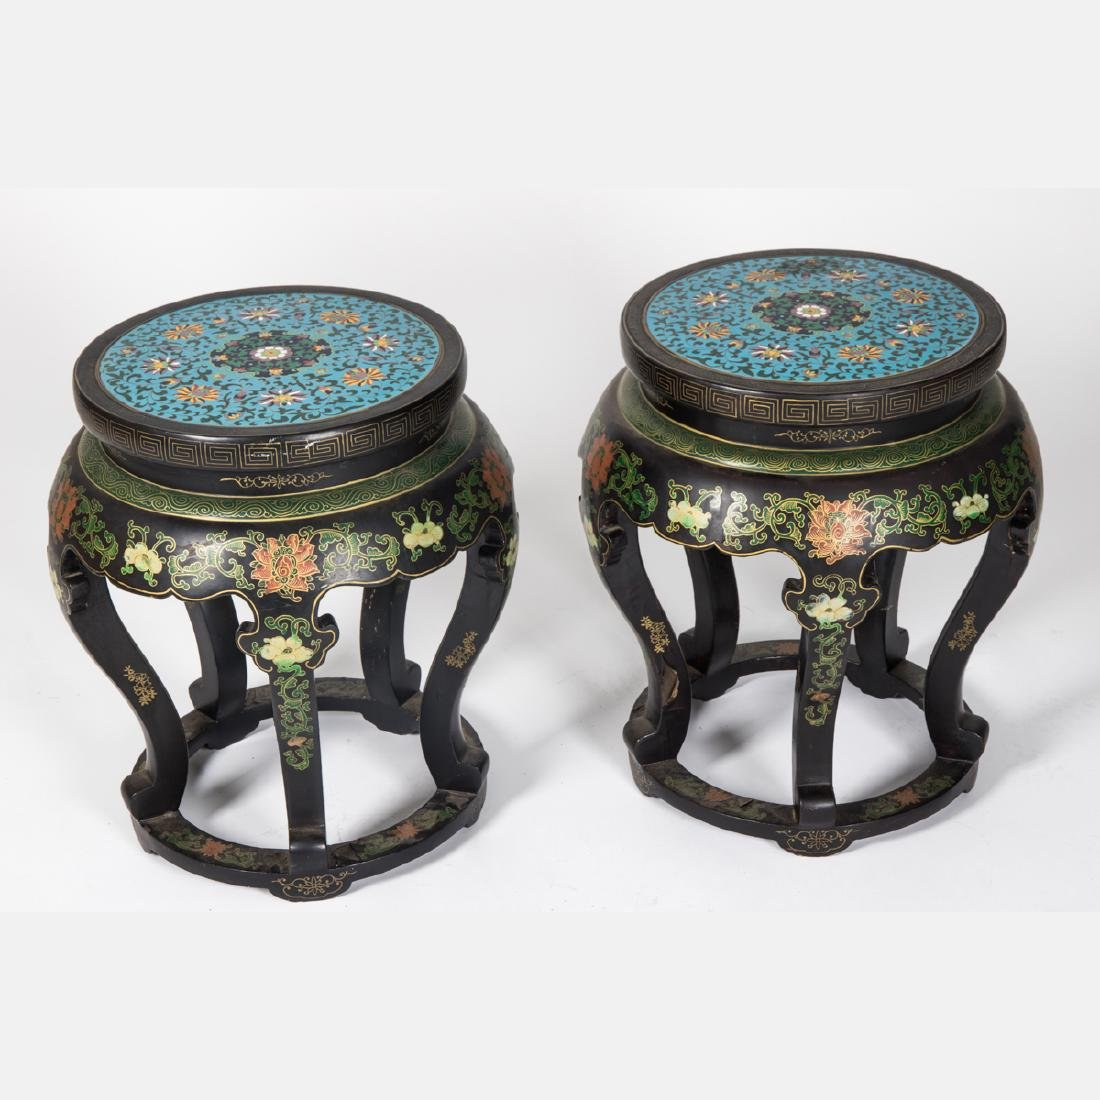 A Pair of Chinese Cloisonné and Painted Wood Pedestals,